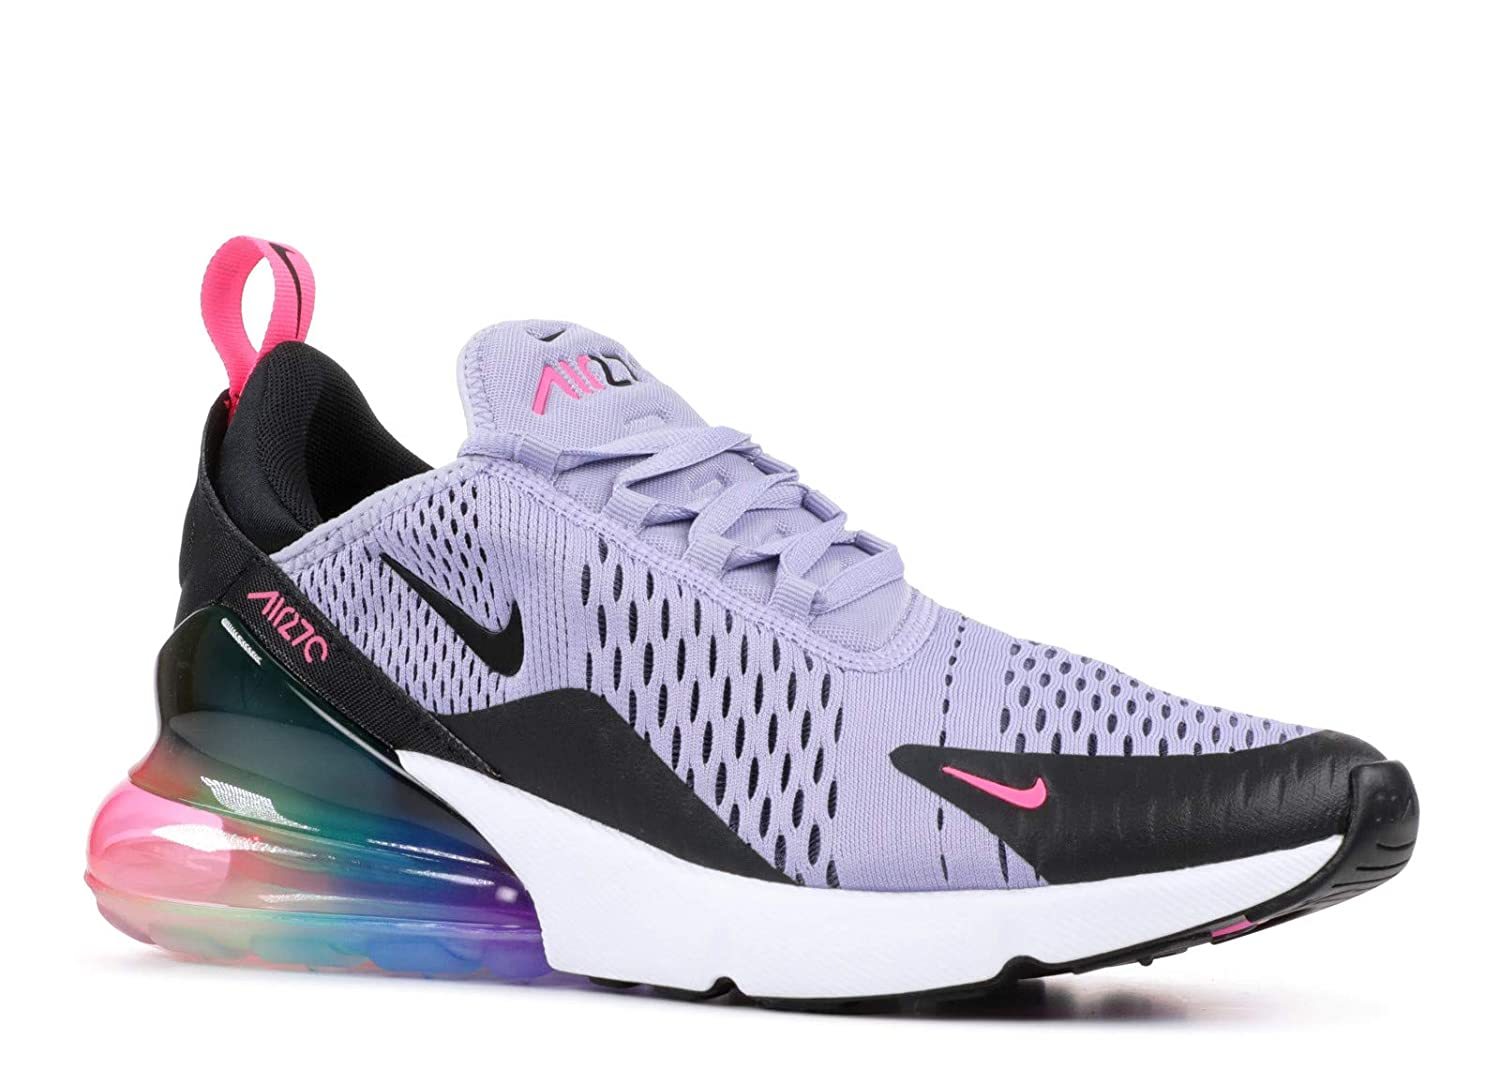 los angeles cheapest price reliable quality Amazon.com | AIR MAX 270 BETRUE 'BE True' - AR0344-500 | Running